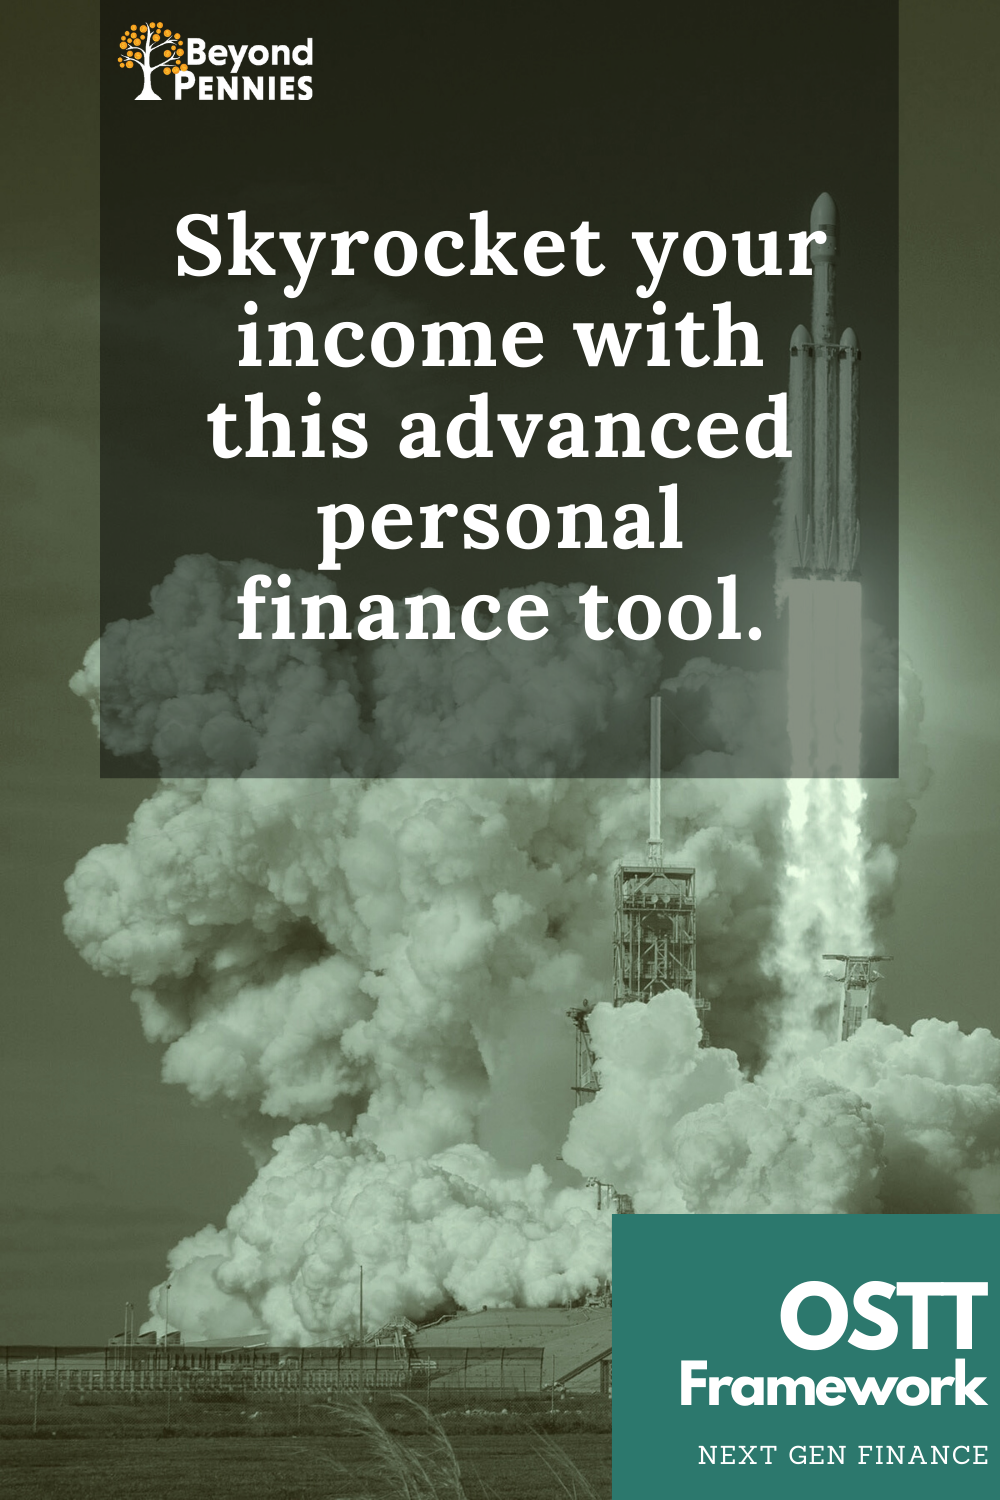 Skyrocket Your Income with this Personal Finance Tool